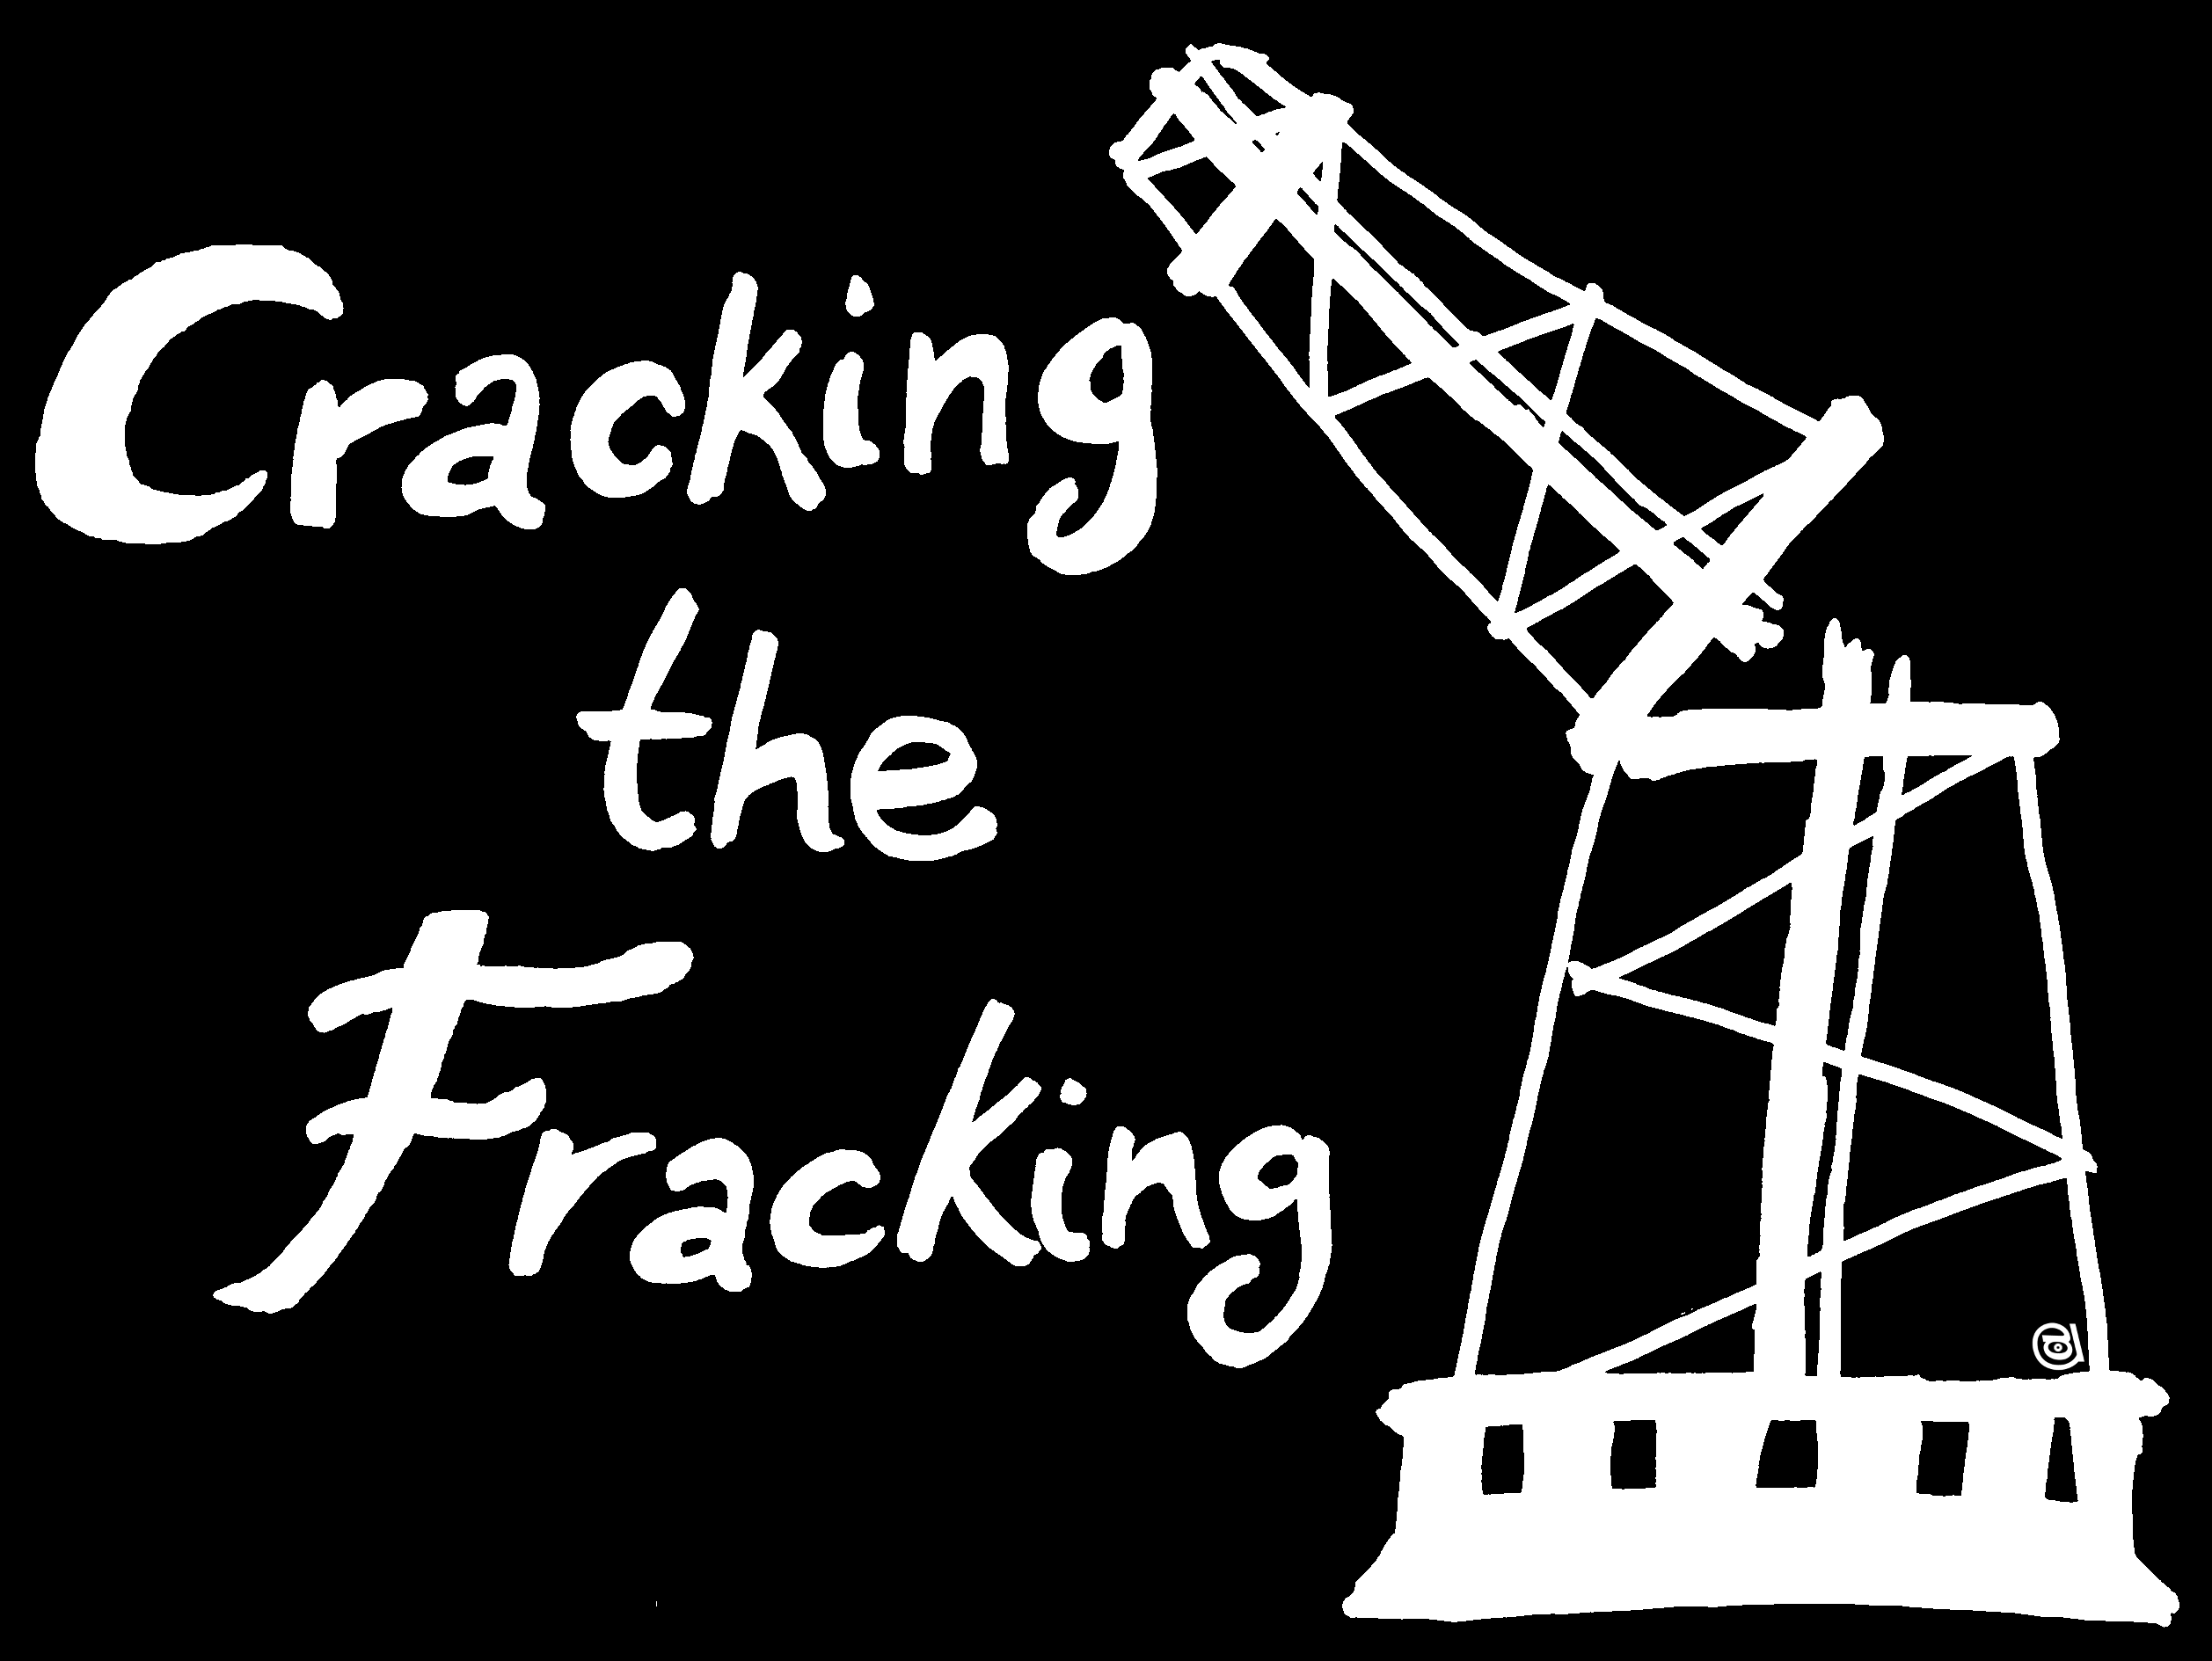 Cracking the Fracking